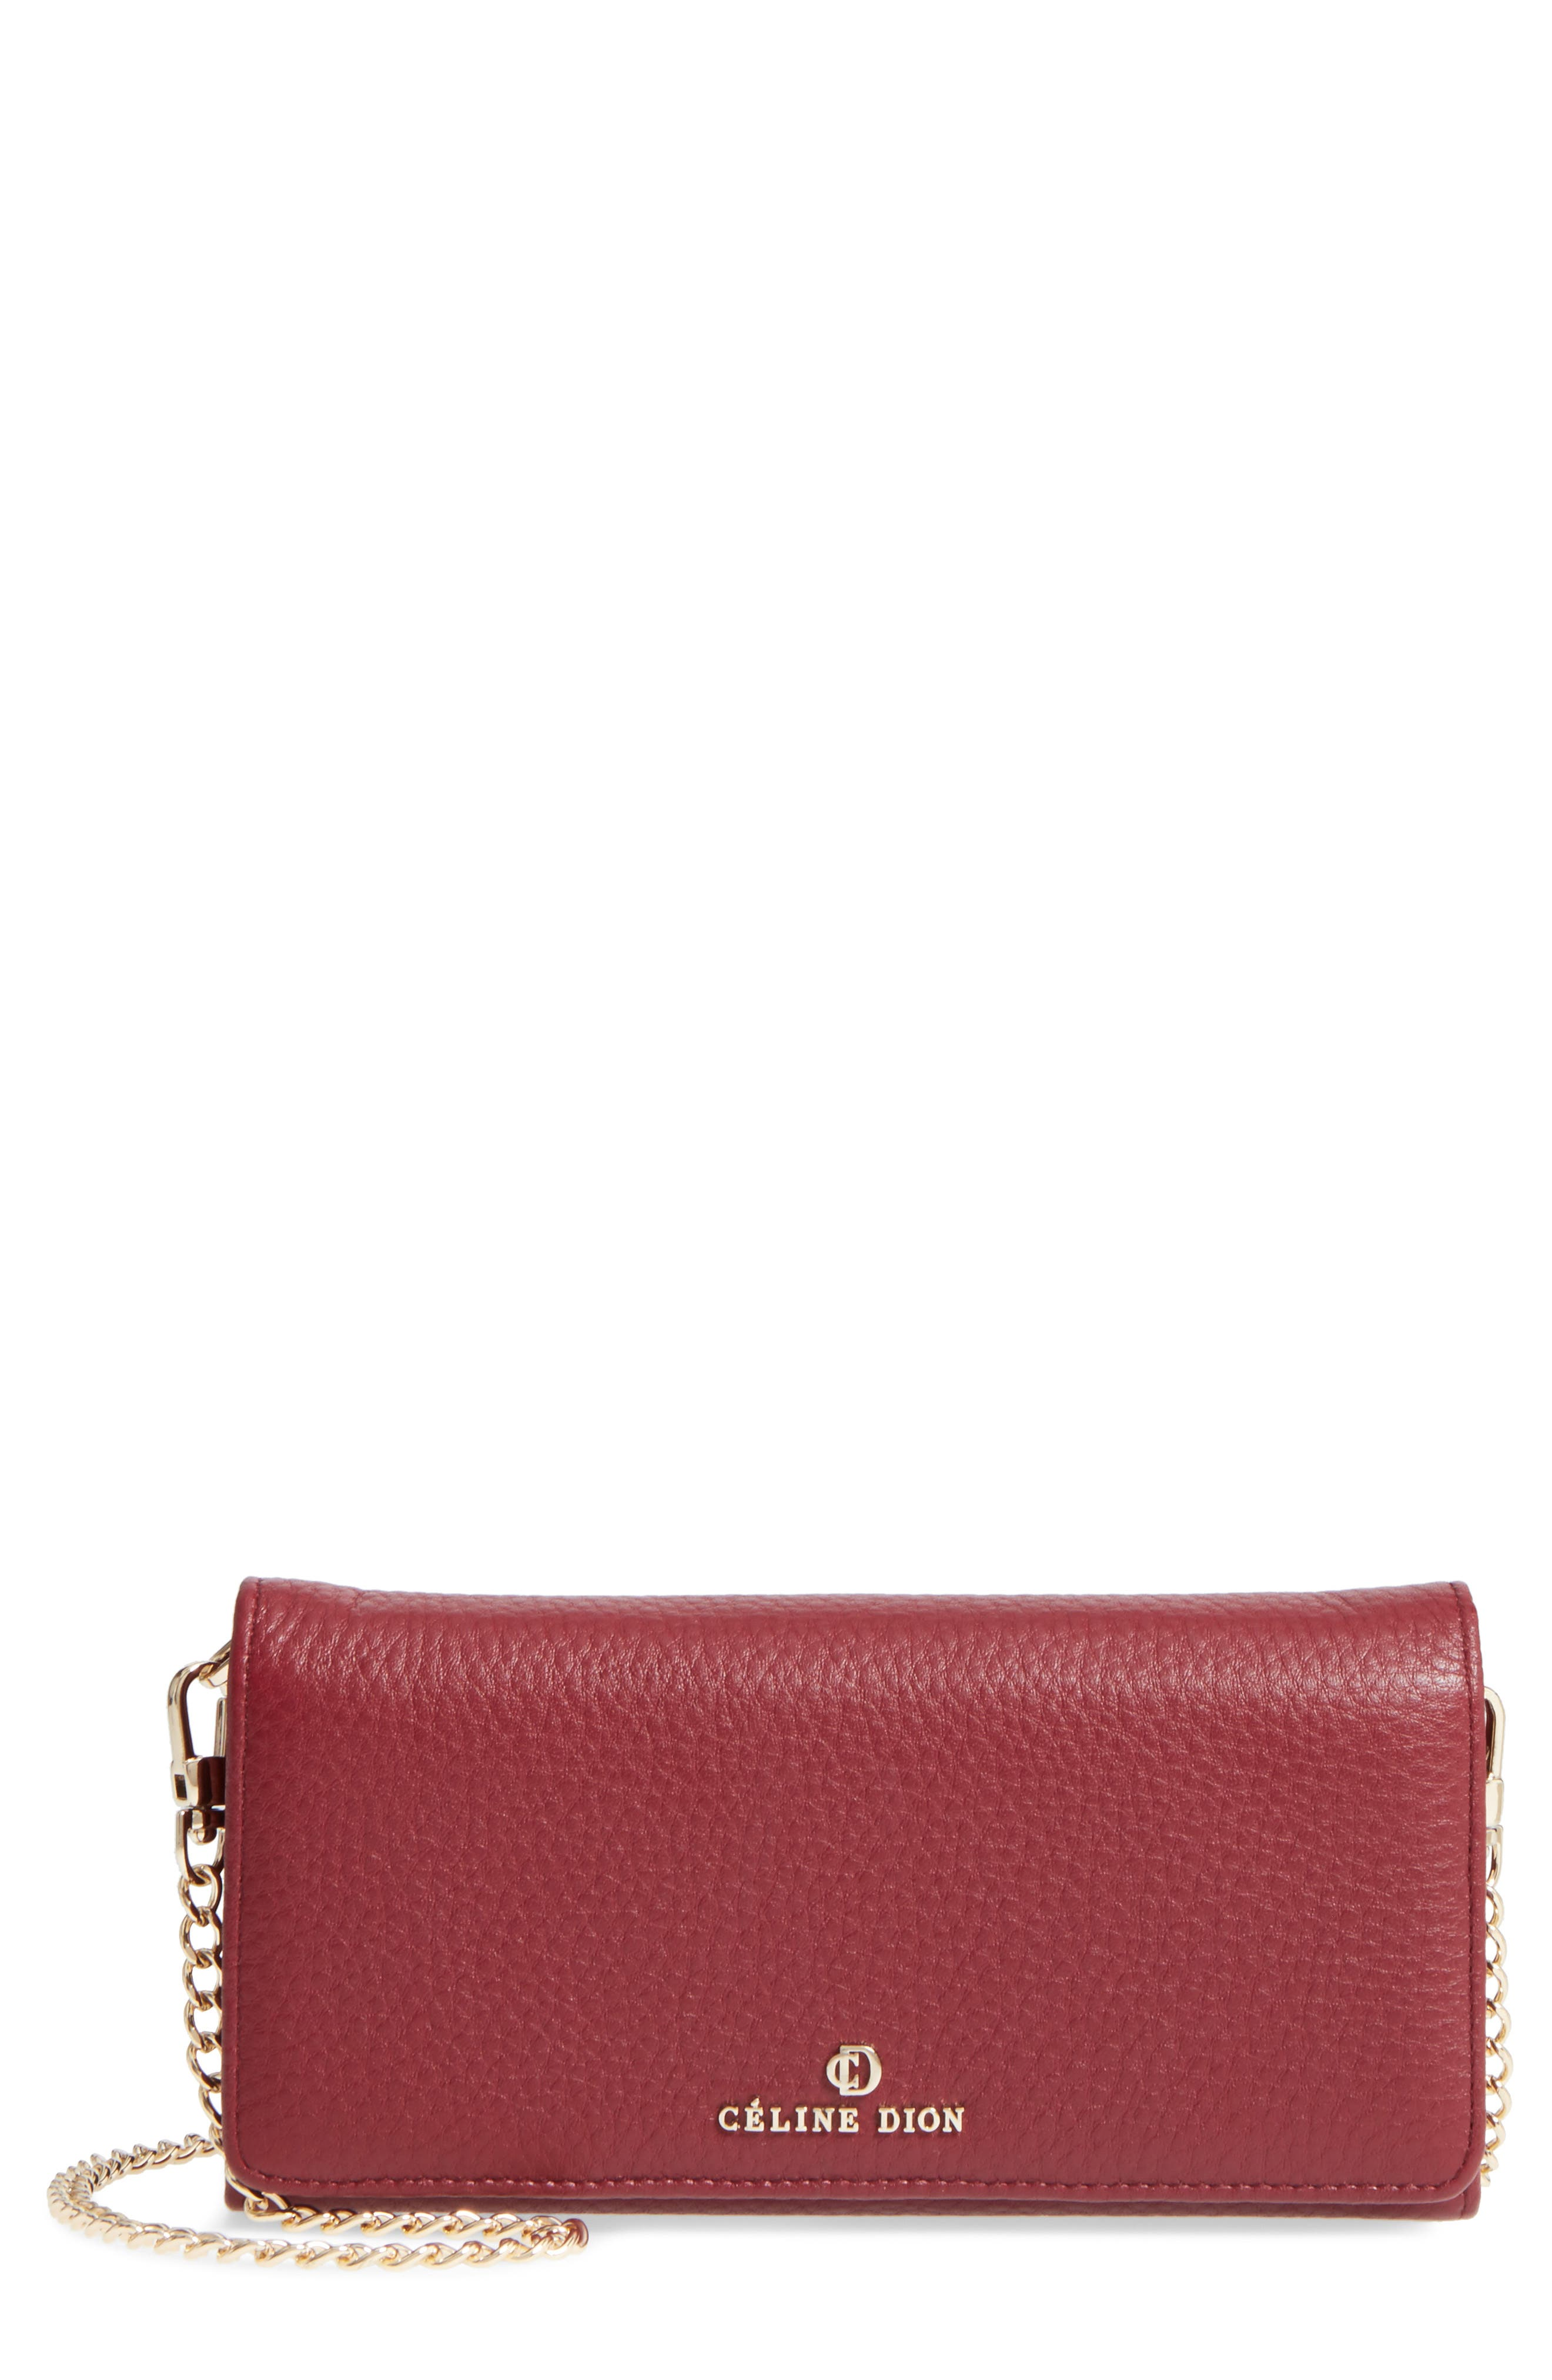 Main Image - Céline Dion Adagio Leather Crossbody Wallet